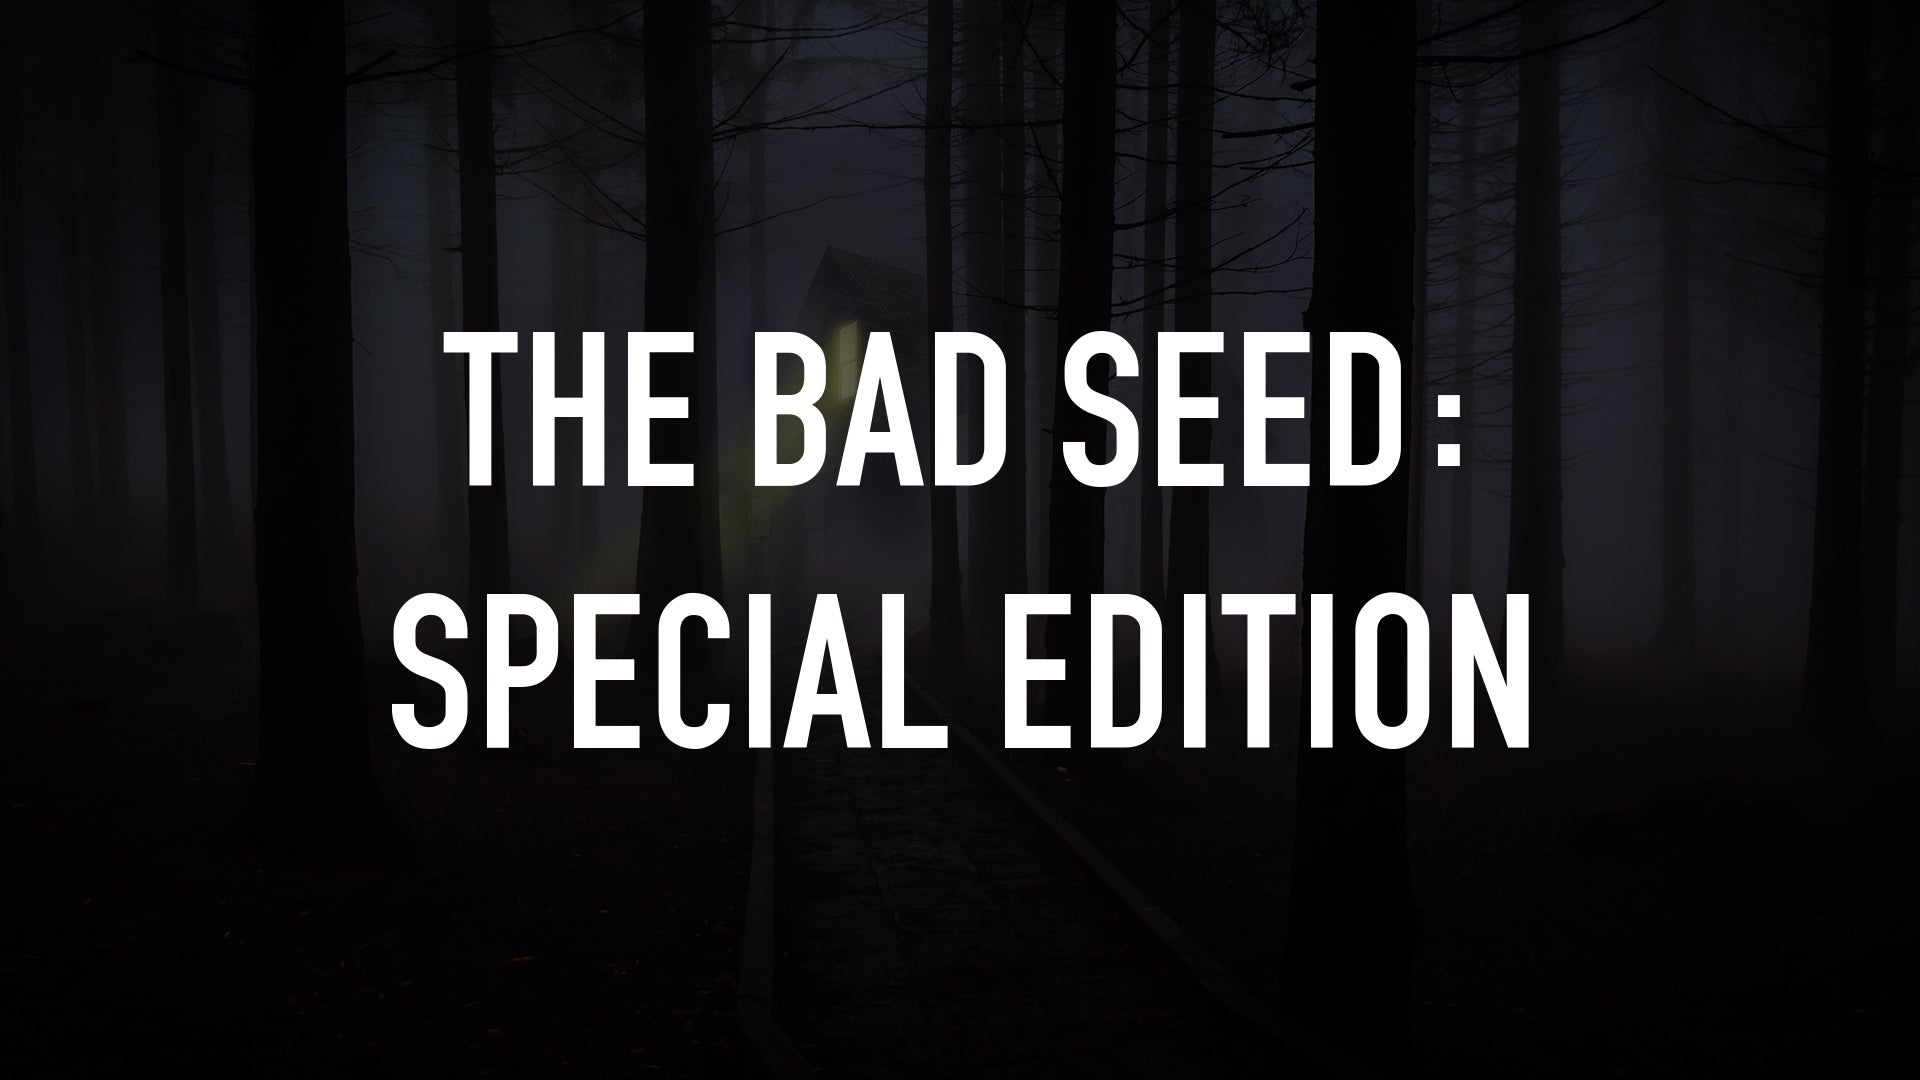 The Bad Seed: Special Edition